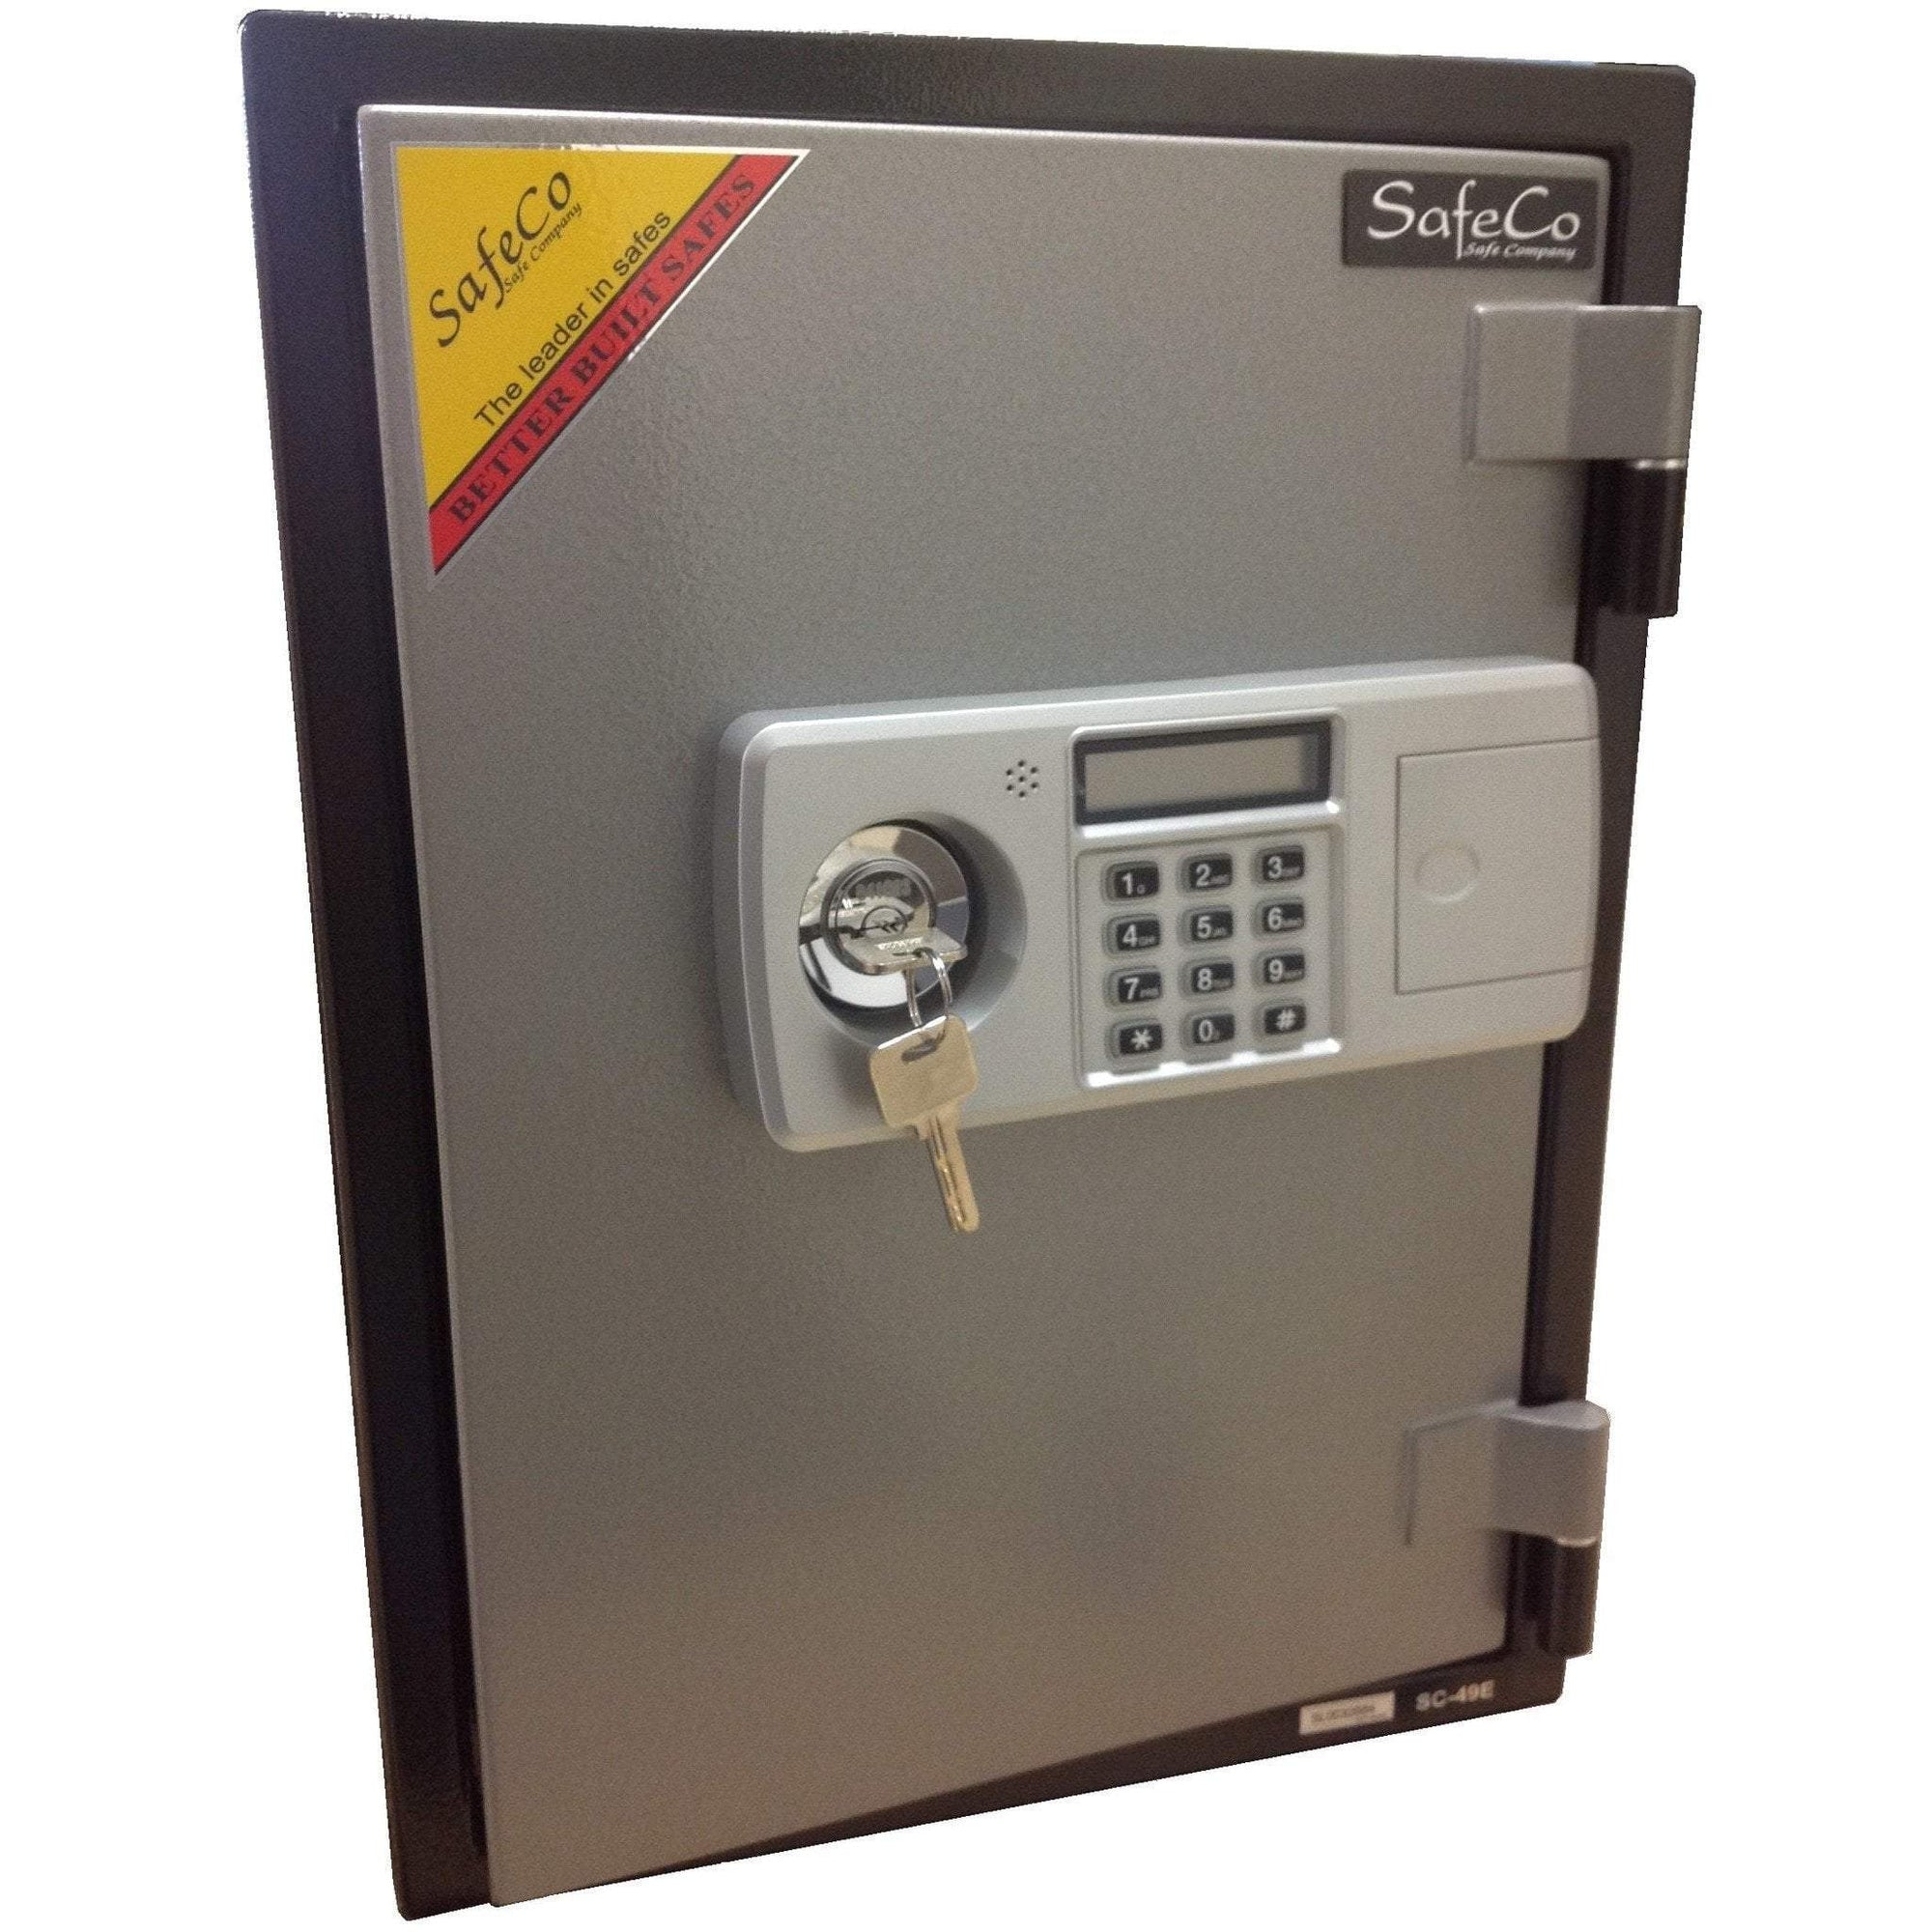 SafeCo HS49-E Two Hour Home Fireproof Safe Armadillo Safe and Vault